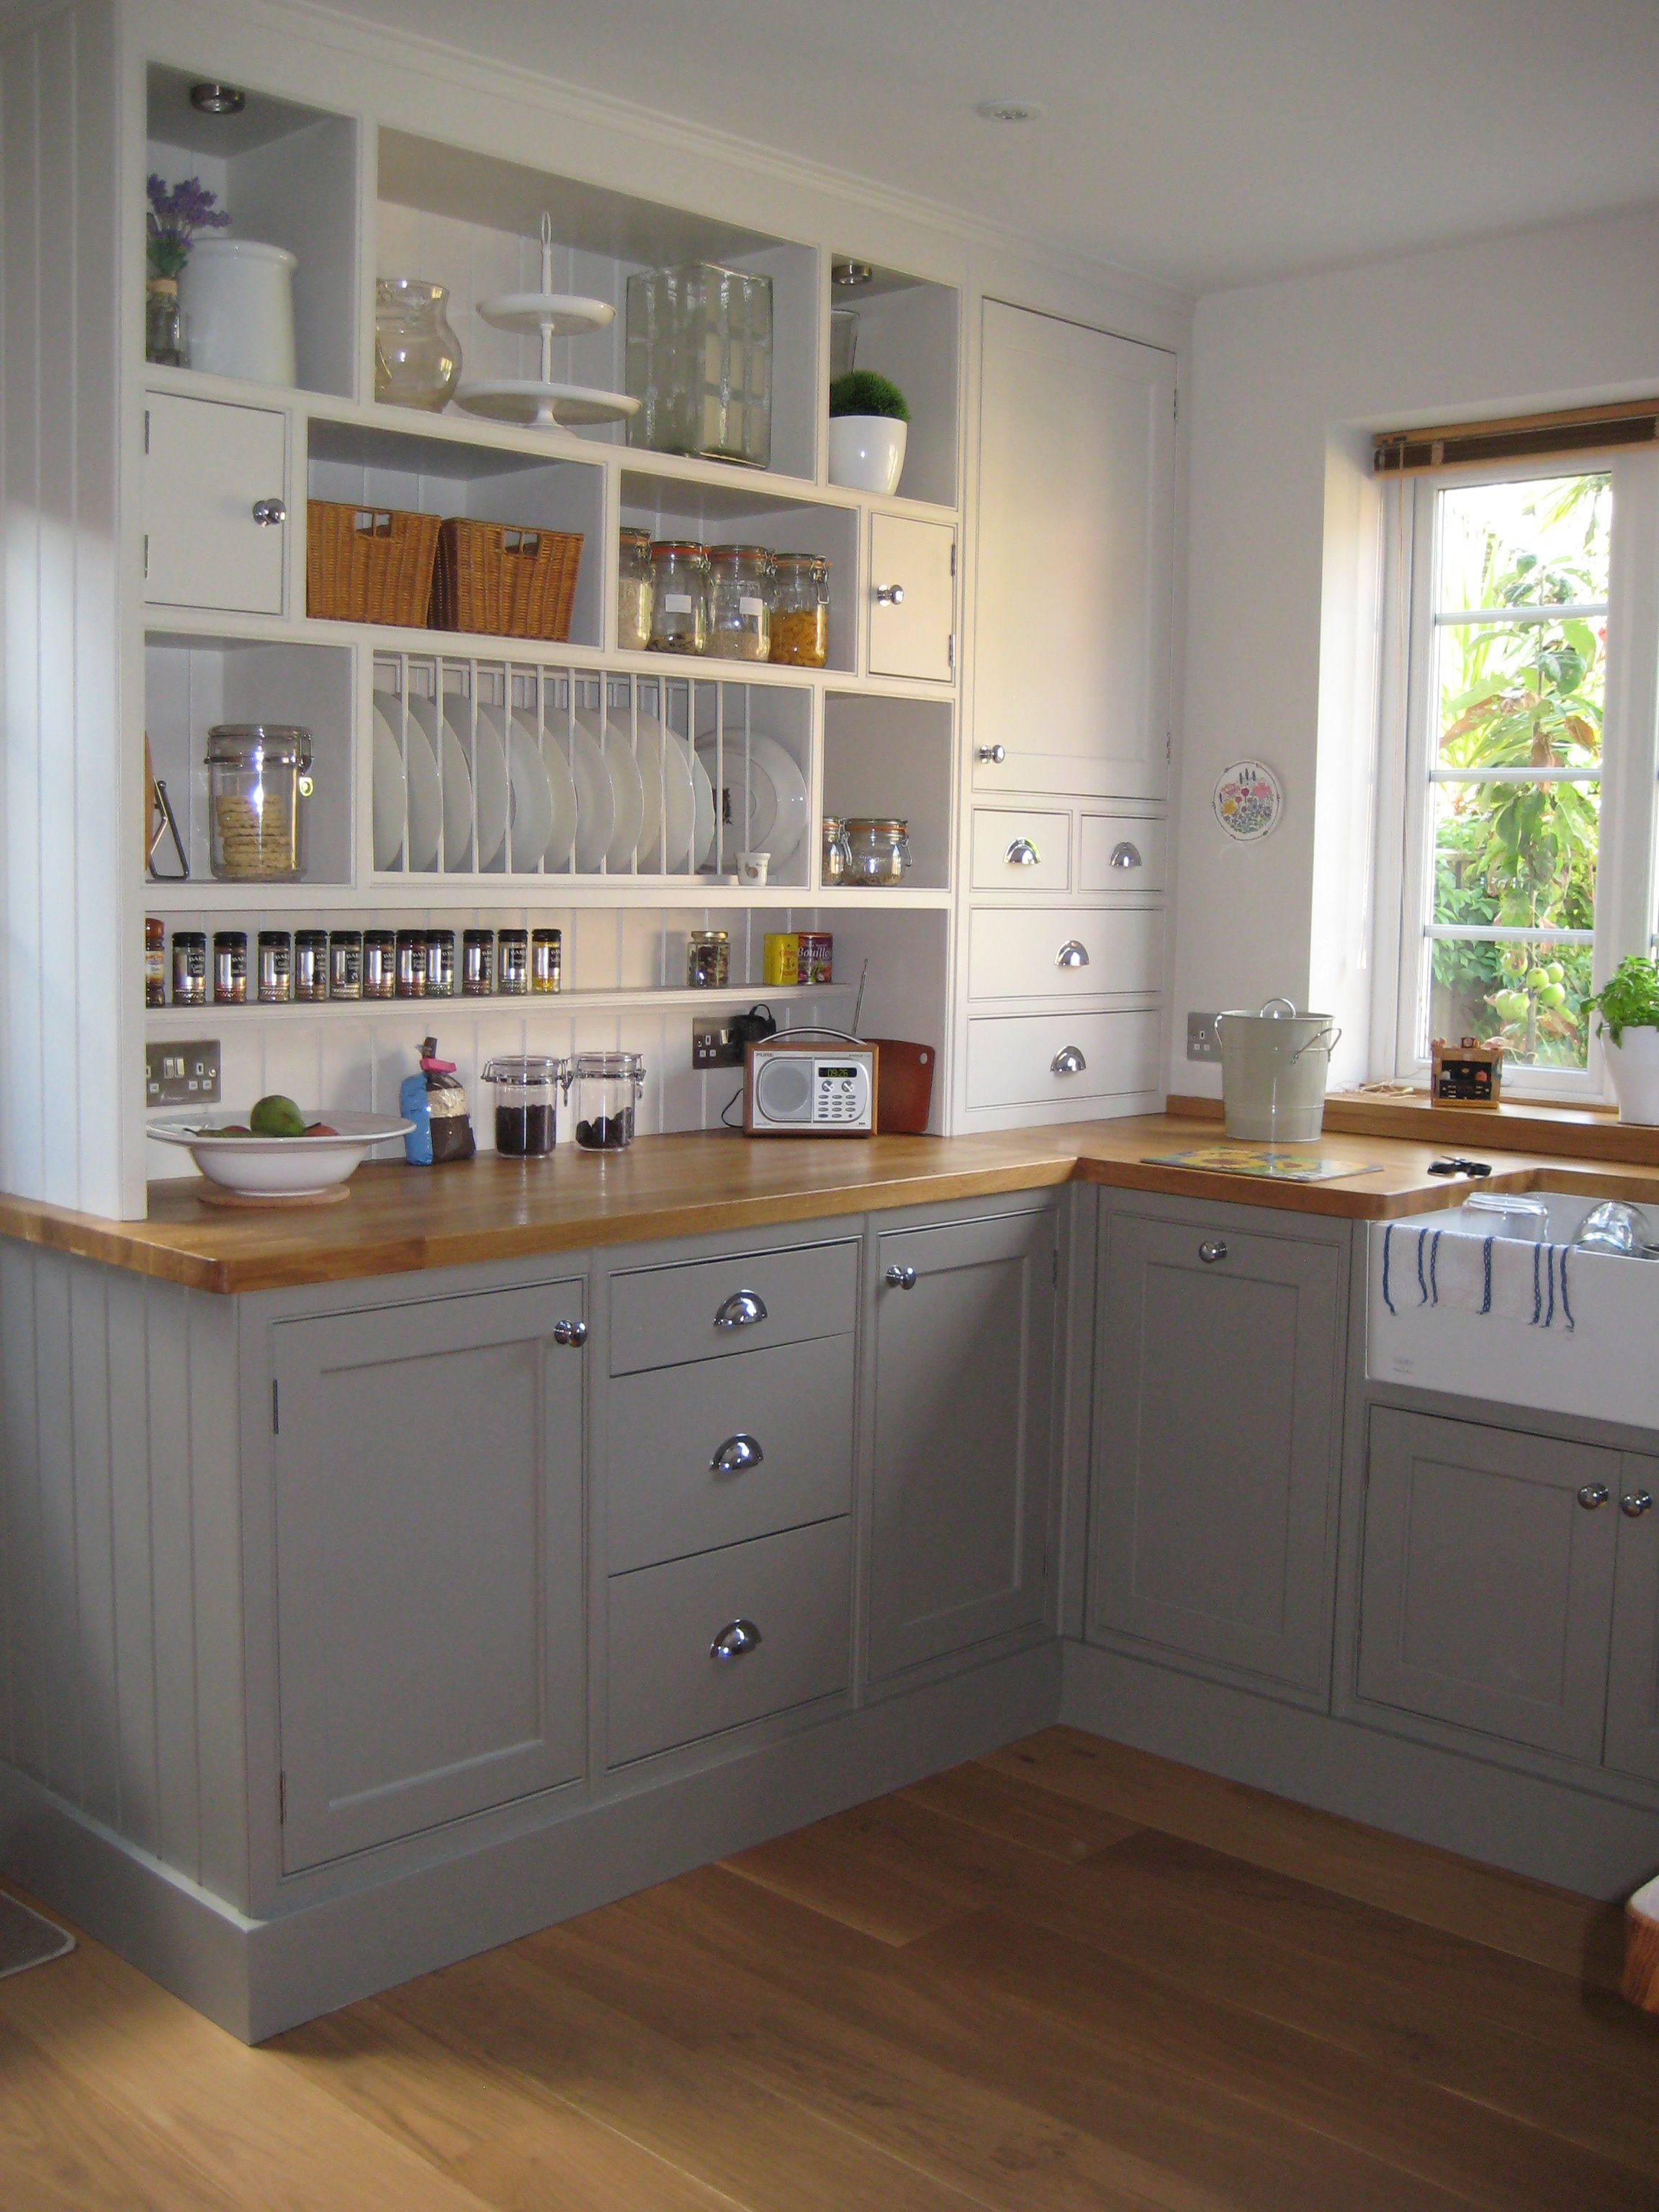 Farrow And Ball Skimming Stone Kitchen In Farrow And Ball Upper Units In Skimming Stone